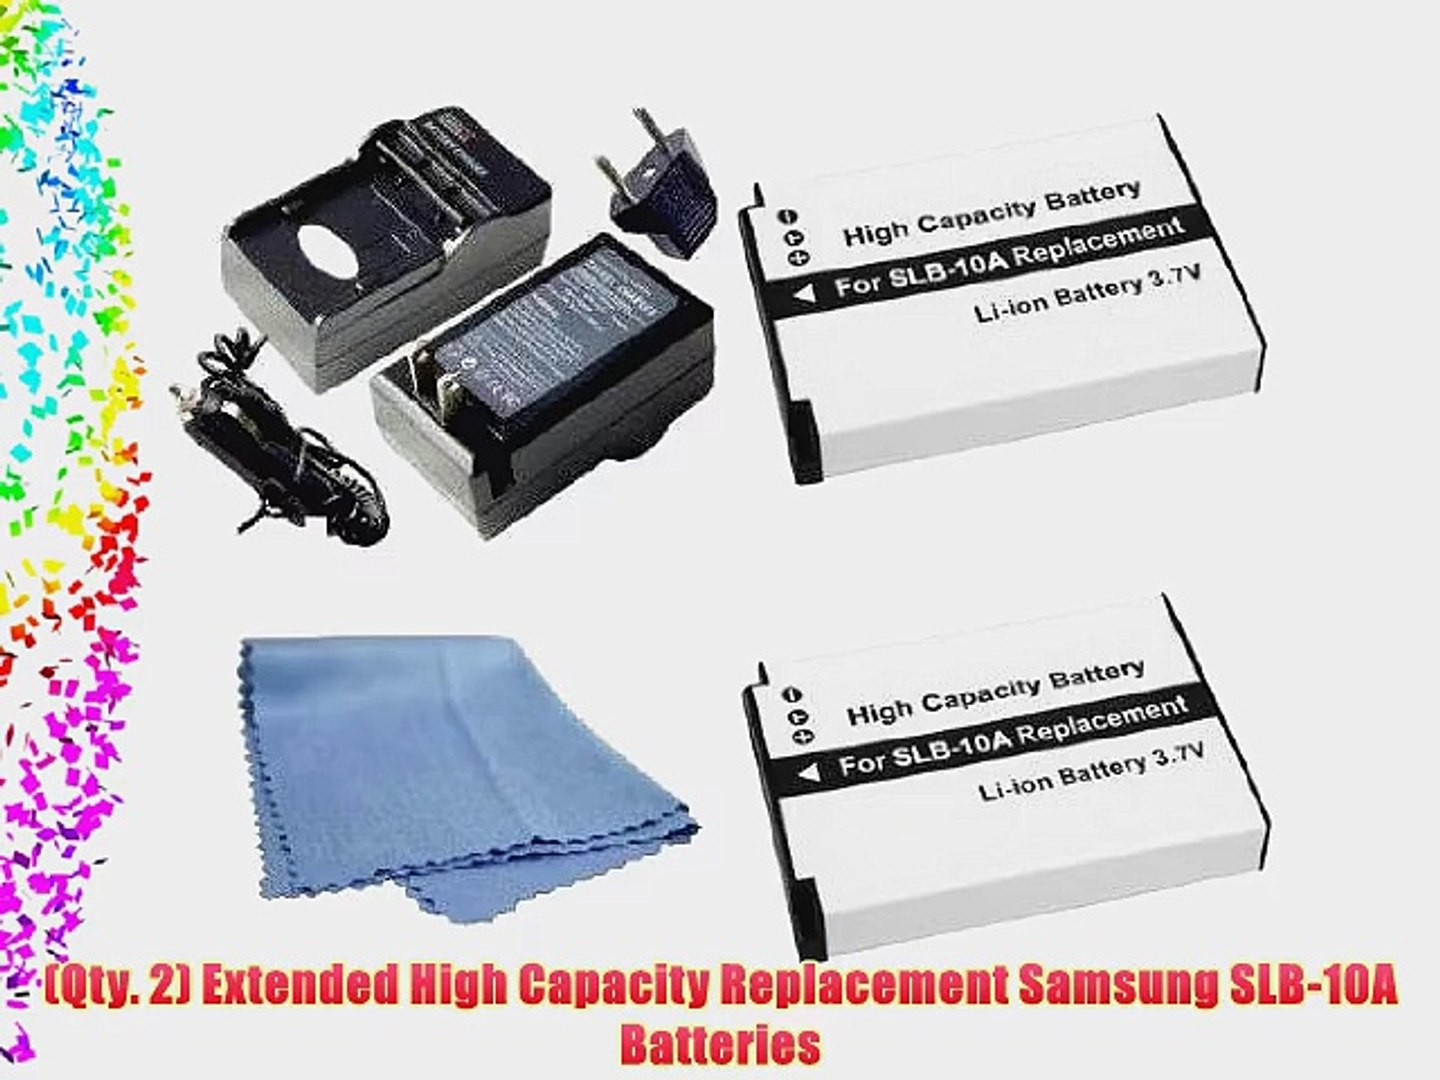 SaveOn 2 Pack Battery and Charger Kit includes Two High Capacity Samsung SLB-10A Batteries